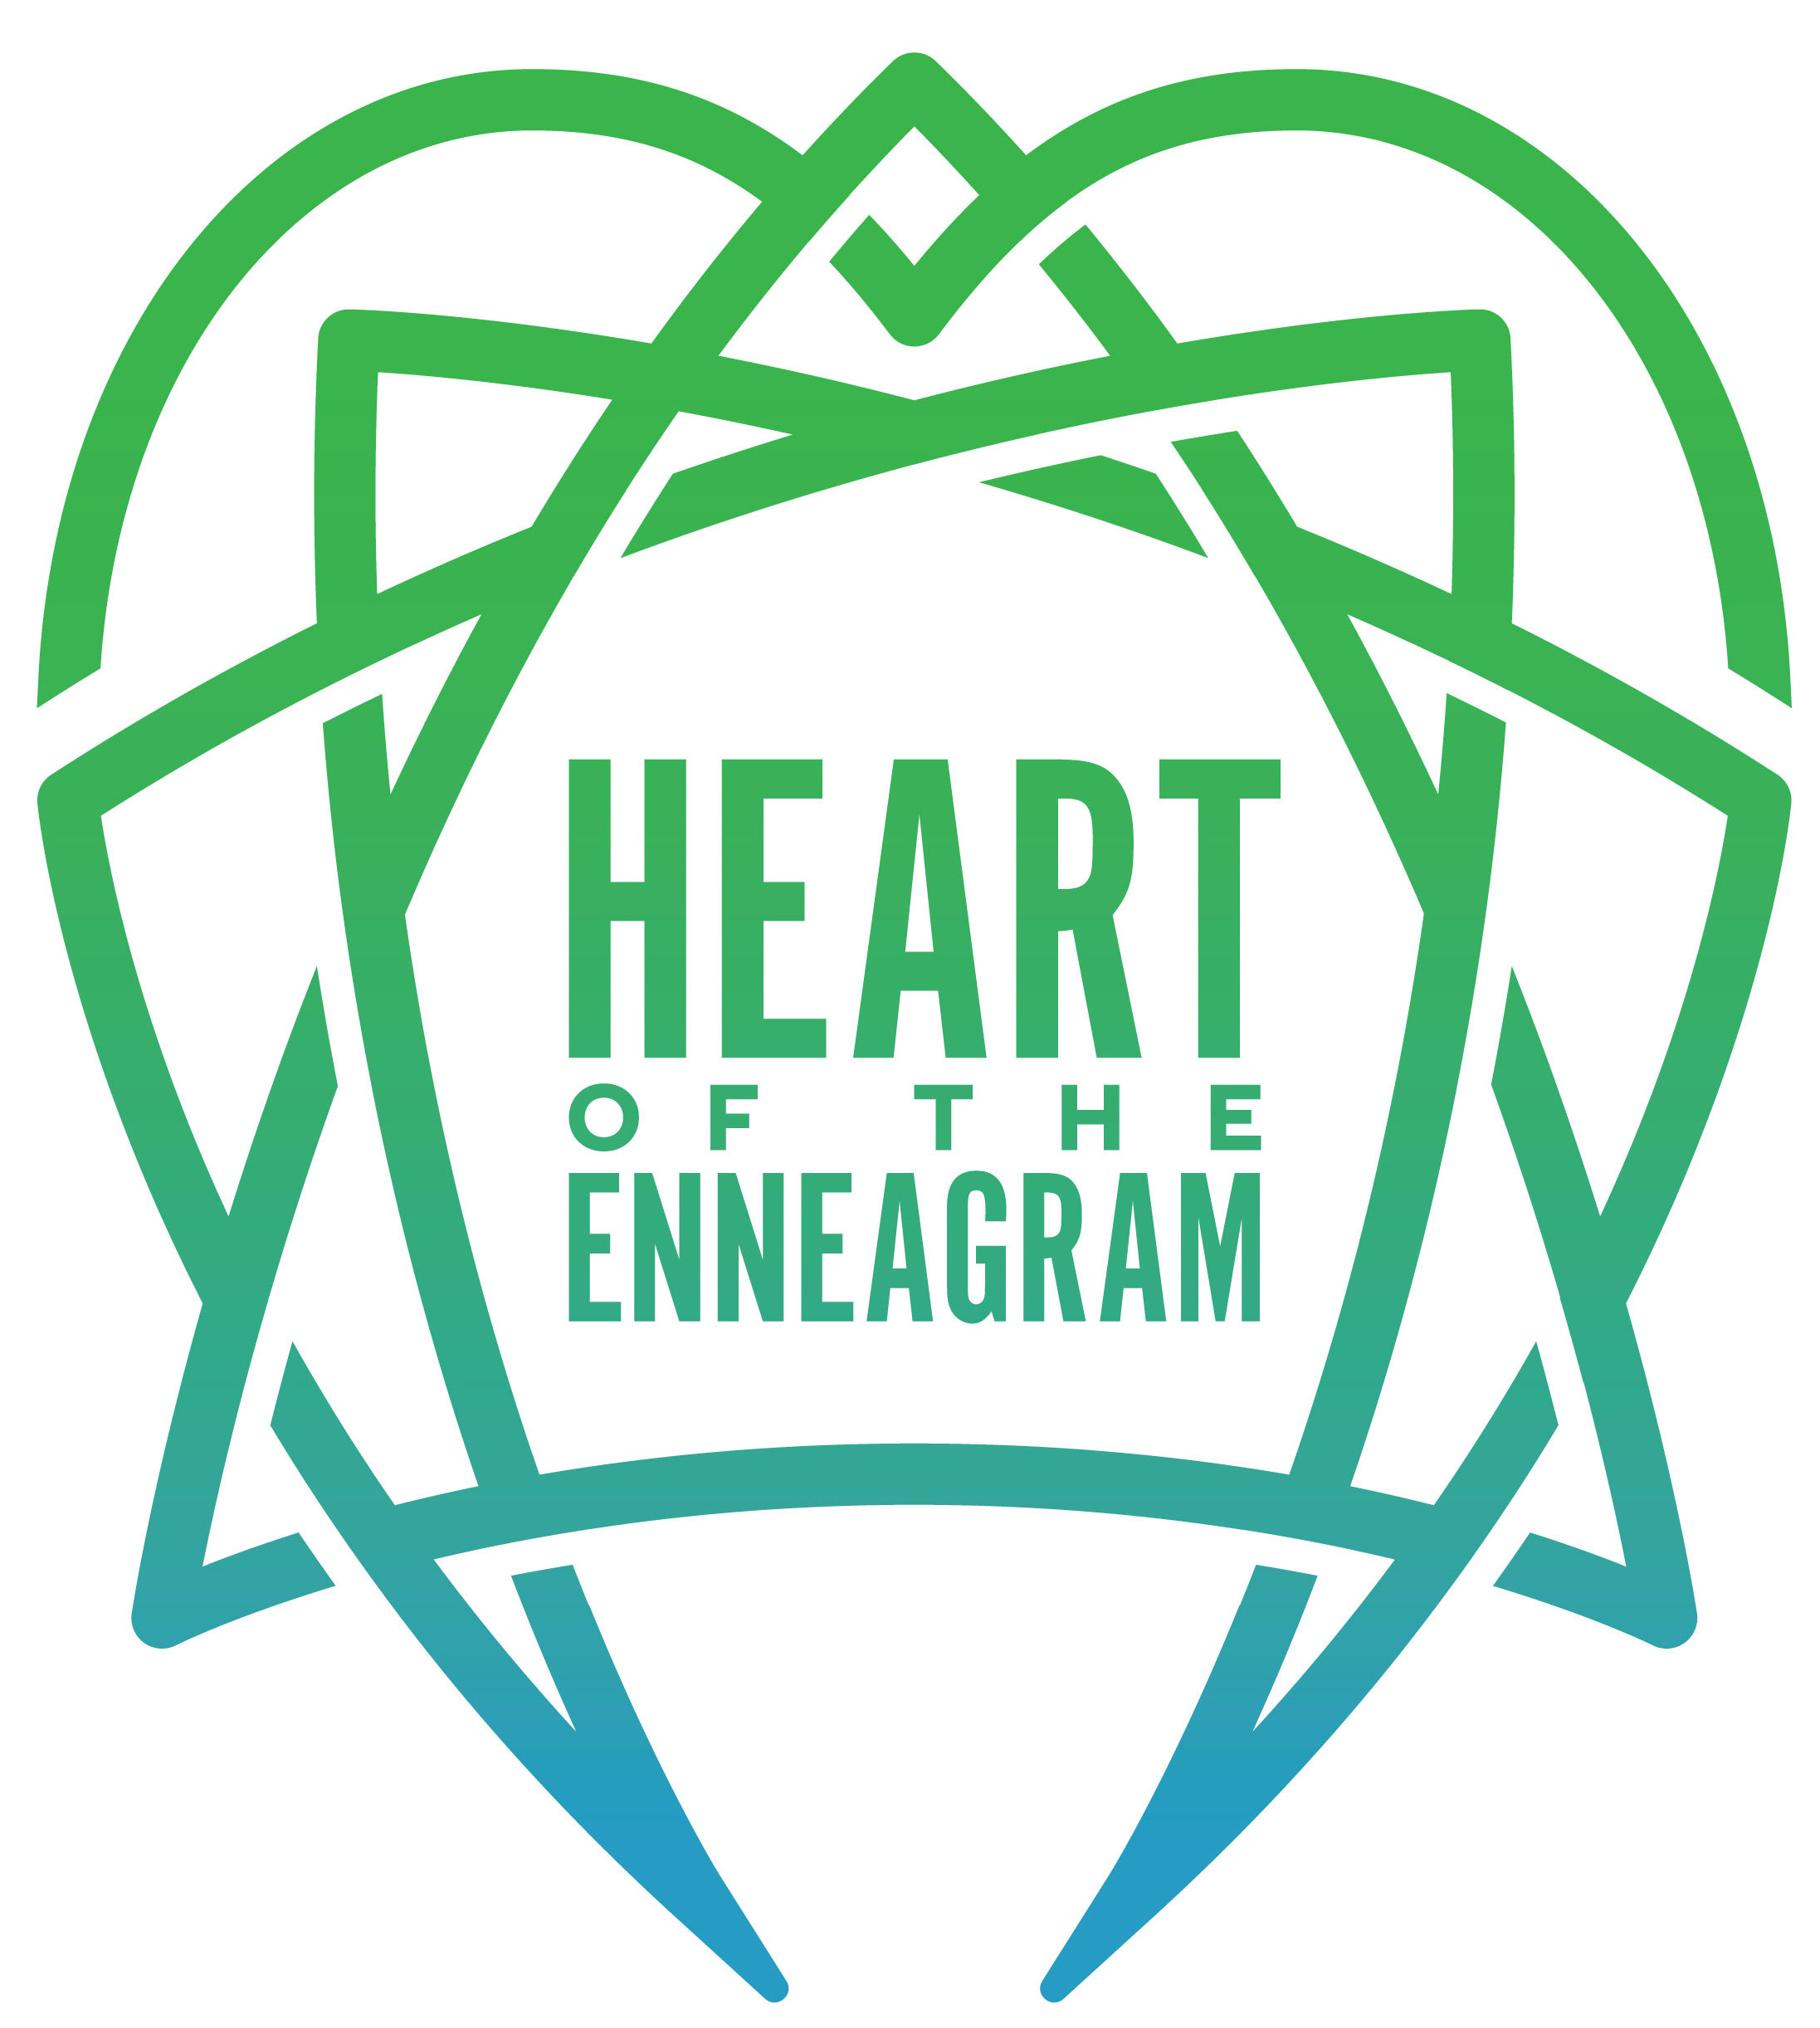 Best Episodes of Heart of the Enneagram